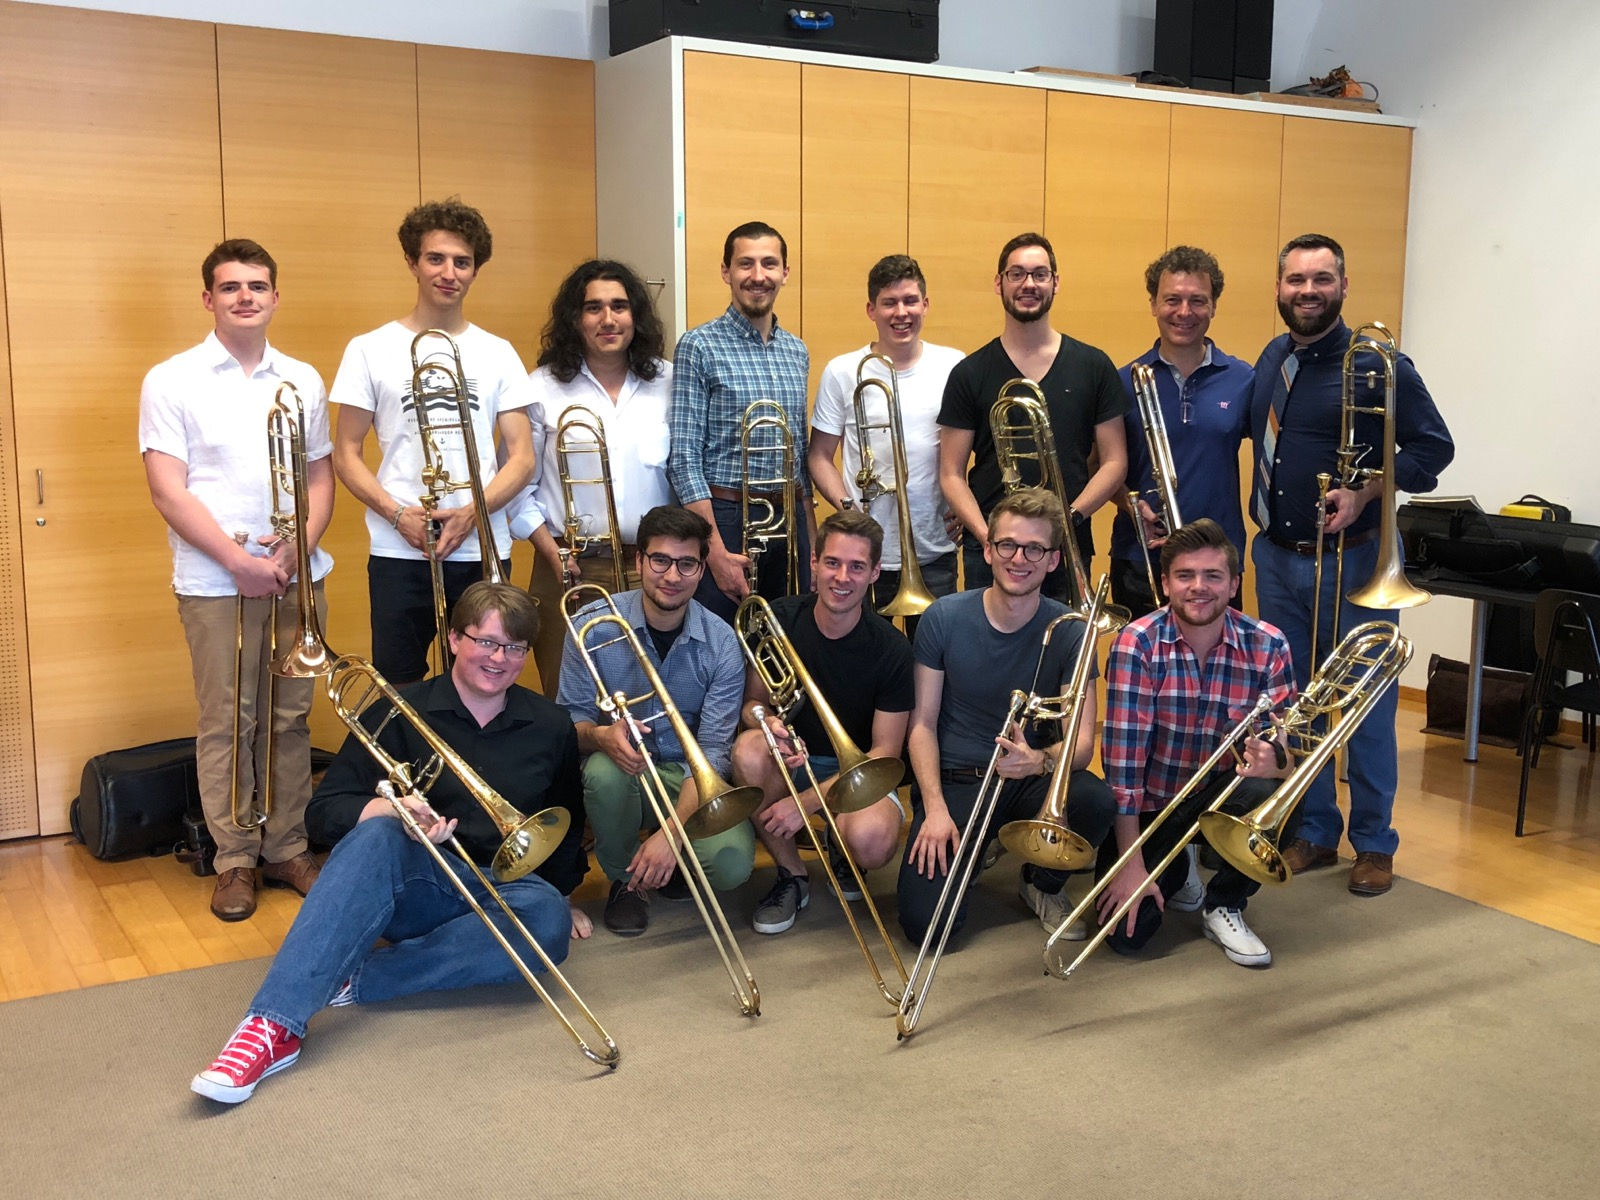 With the trombone students of Dietmar Küblböck in Vienna!